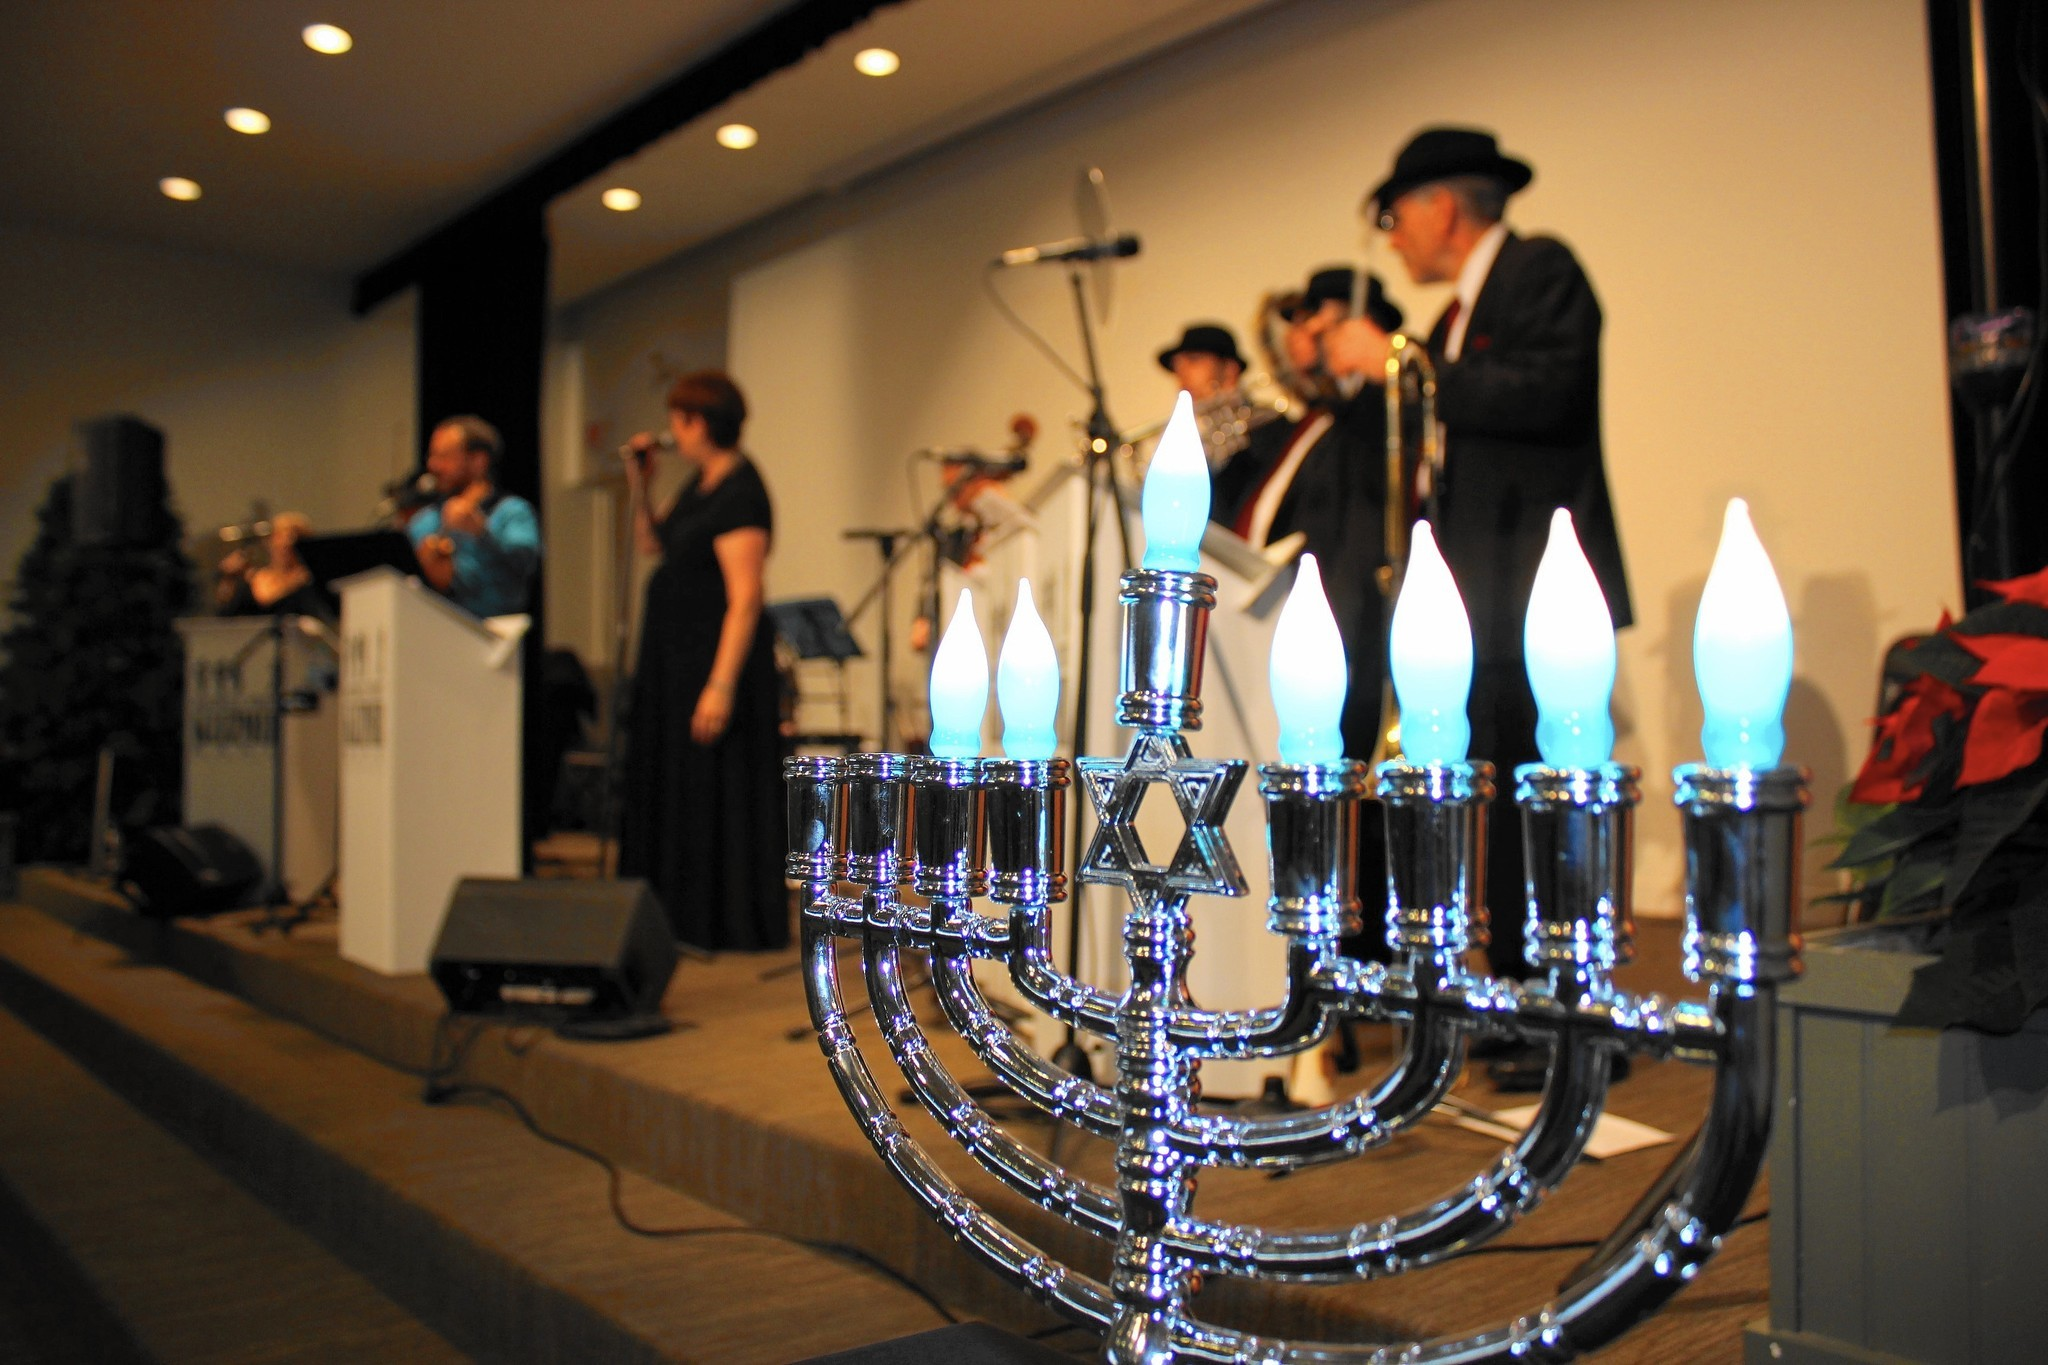 Celebrating Hanukkah through music - Chicago Tribune